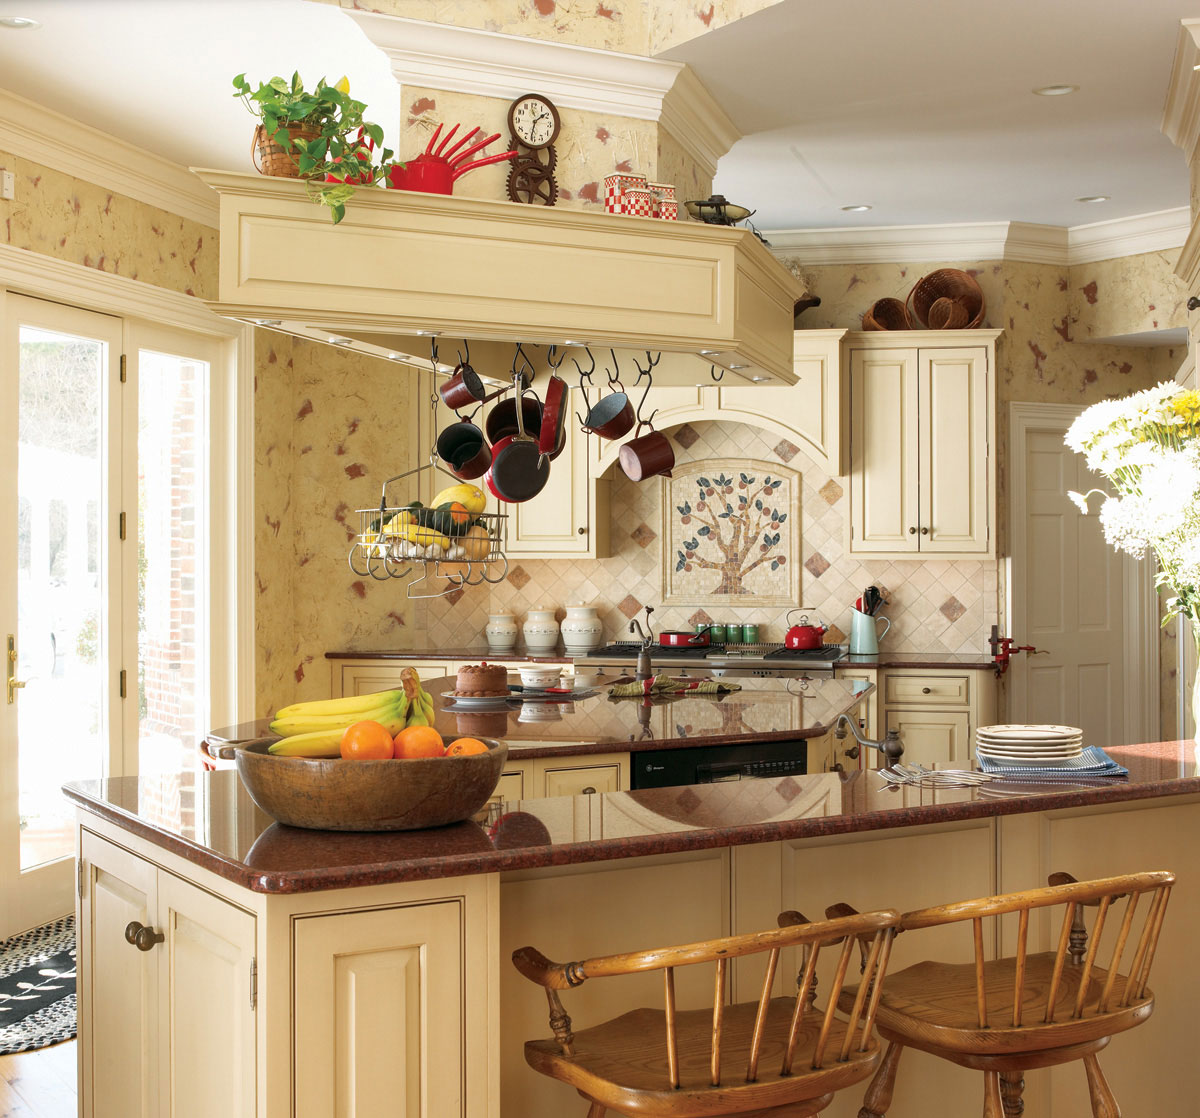 Free download french country kitchen decorating wallpaper ...